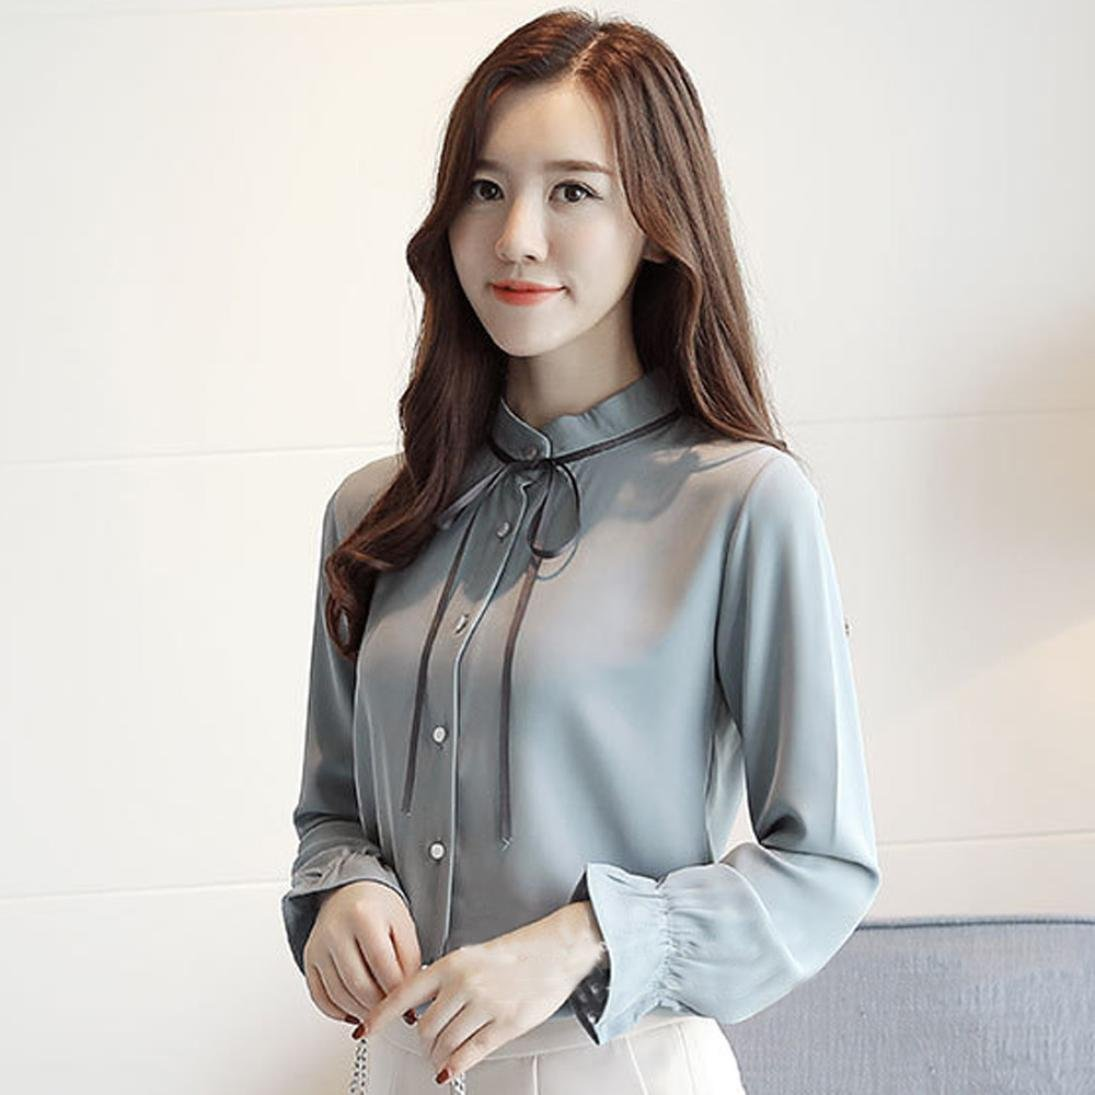 560fe4bd61ef Gyoume Women Tops Lady Office Blouse Banded Collar Shirts Bow Tie Shirts  Work Shirt Long Sleeve Casual Outwears at Amazon Women's Clothing store: